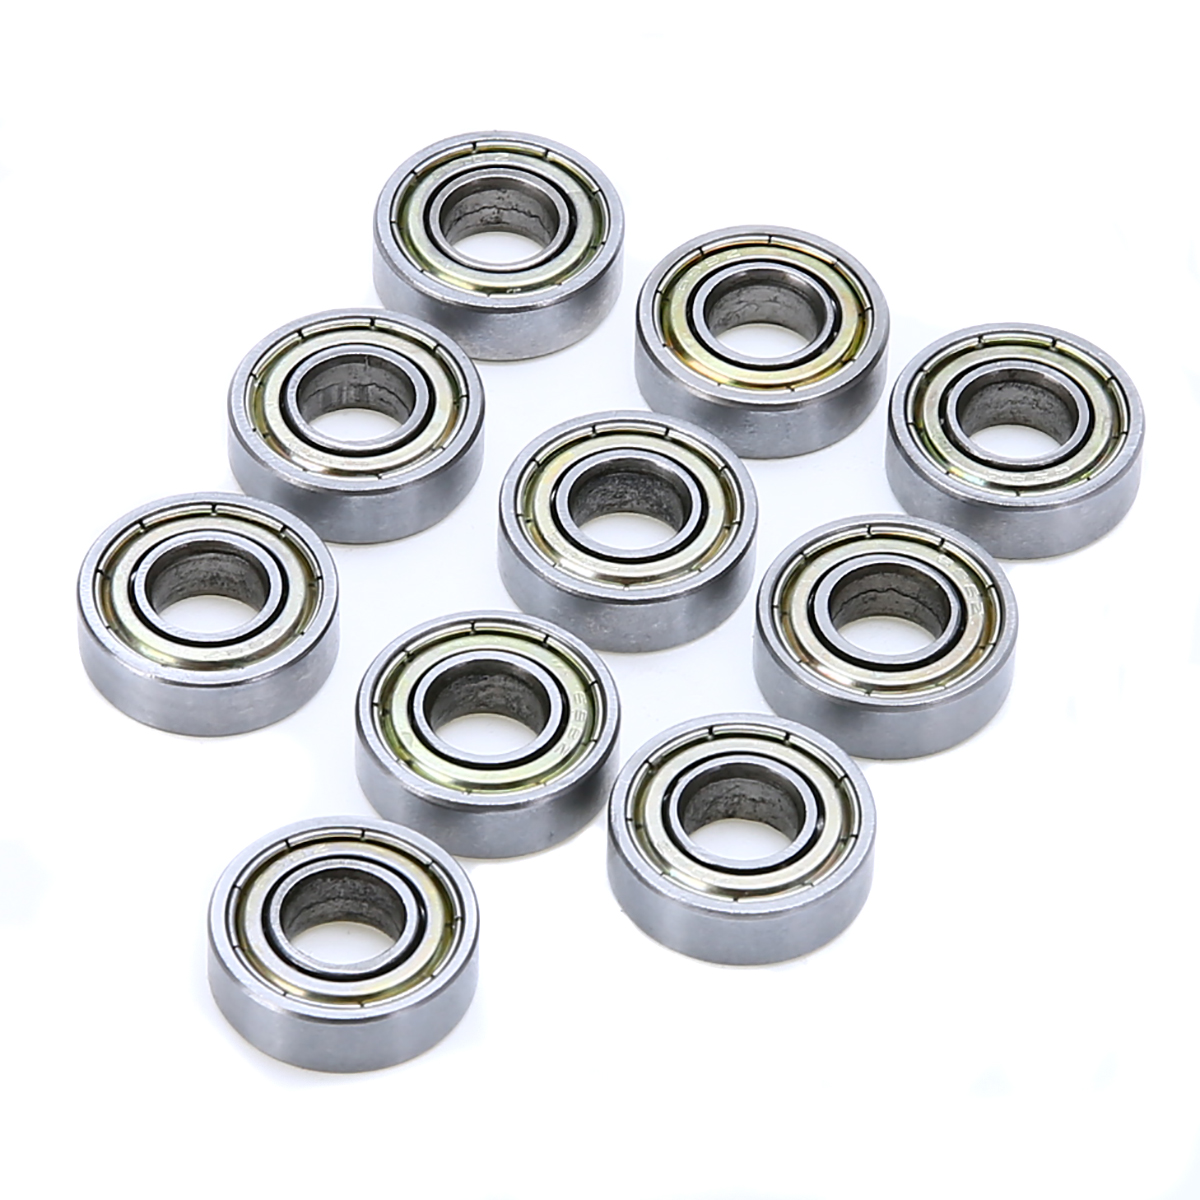 10pcs Mayitr 698ZZ Ball Bearings Carbon Steel Sealed Deep Groove Radial Wheel Bearings 8*19*6mm for Electric Motors mtgather durable steel 6800zz deep groove ball bearings two side metal shields 10x19x5mm mechanical parts accessories